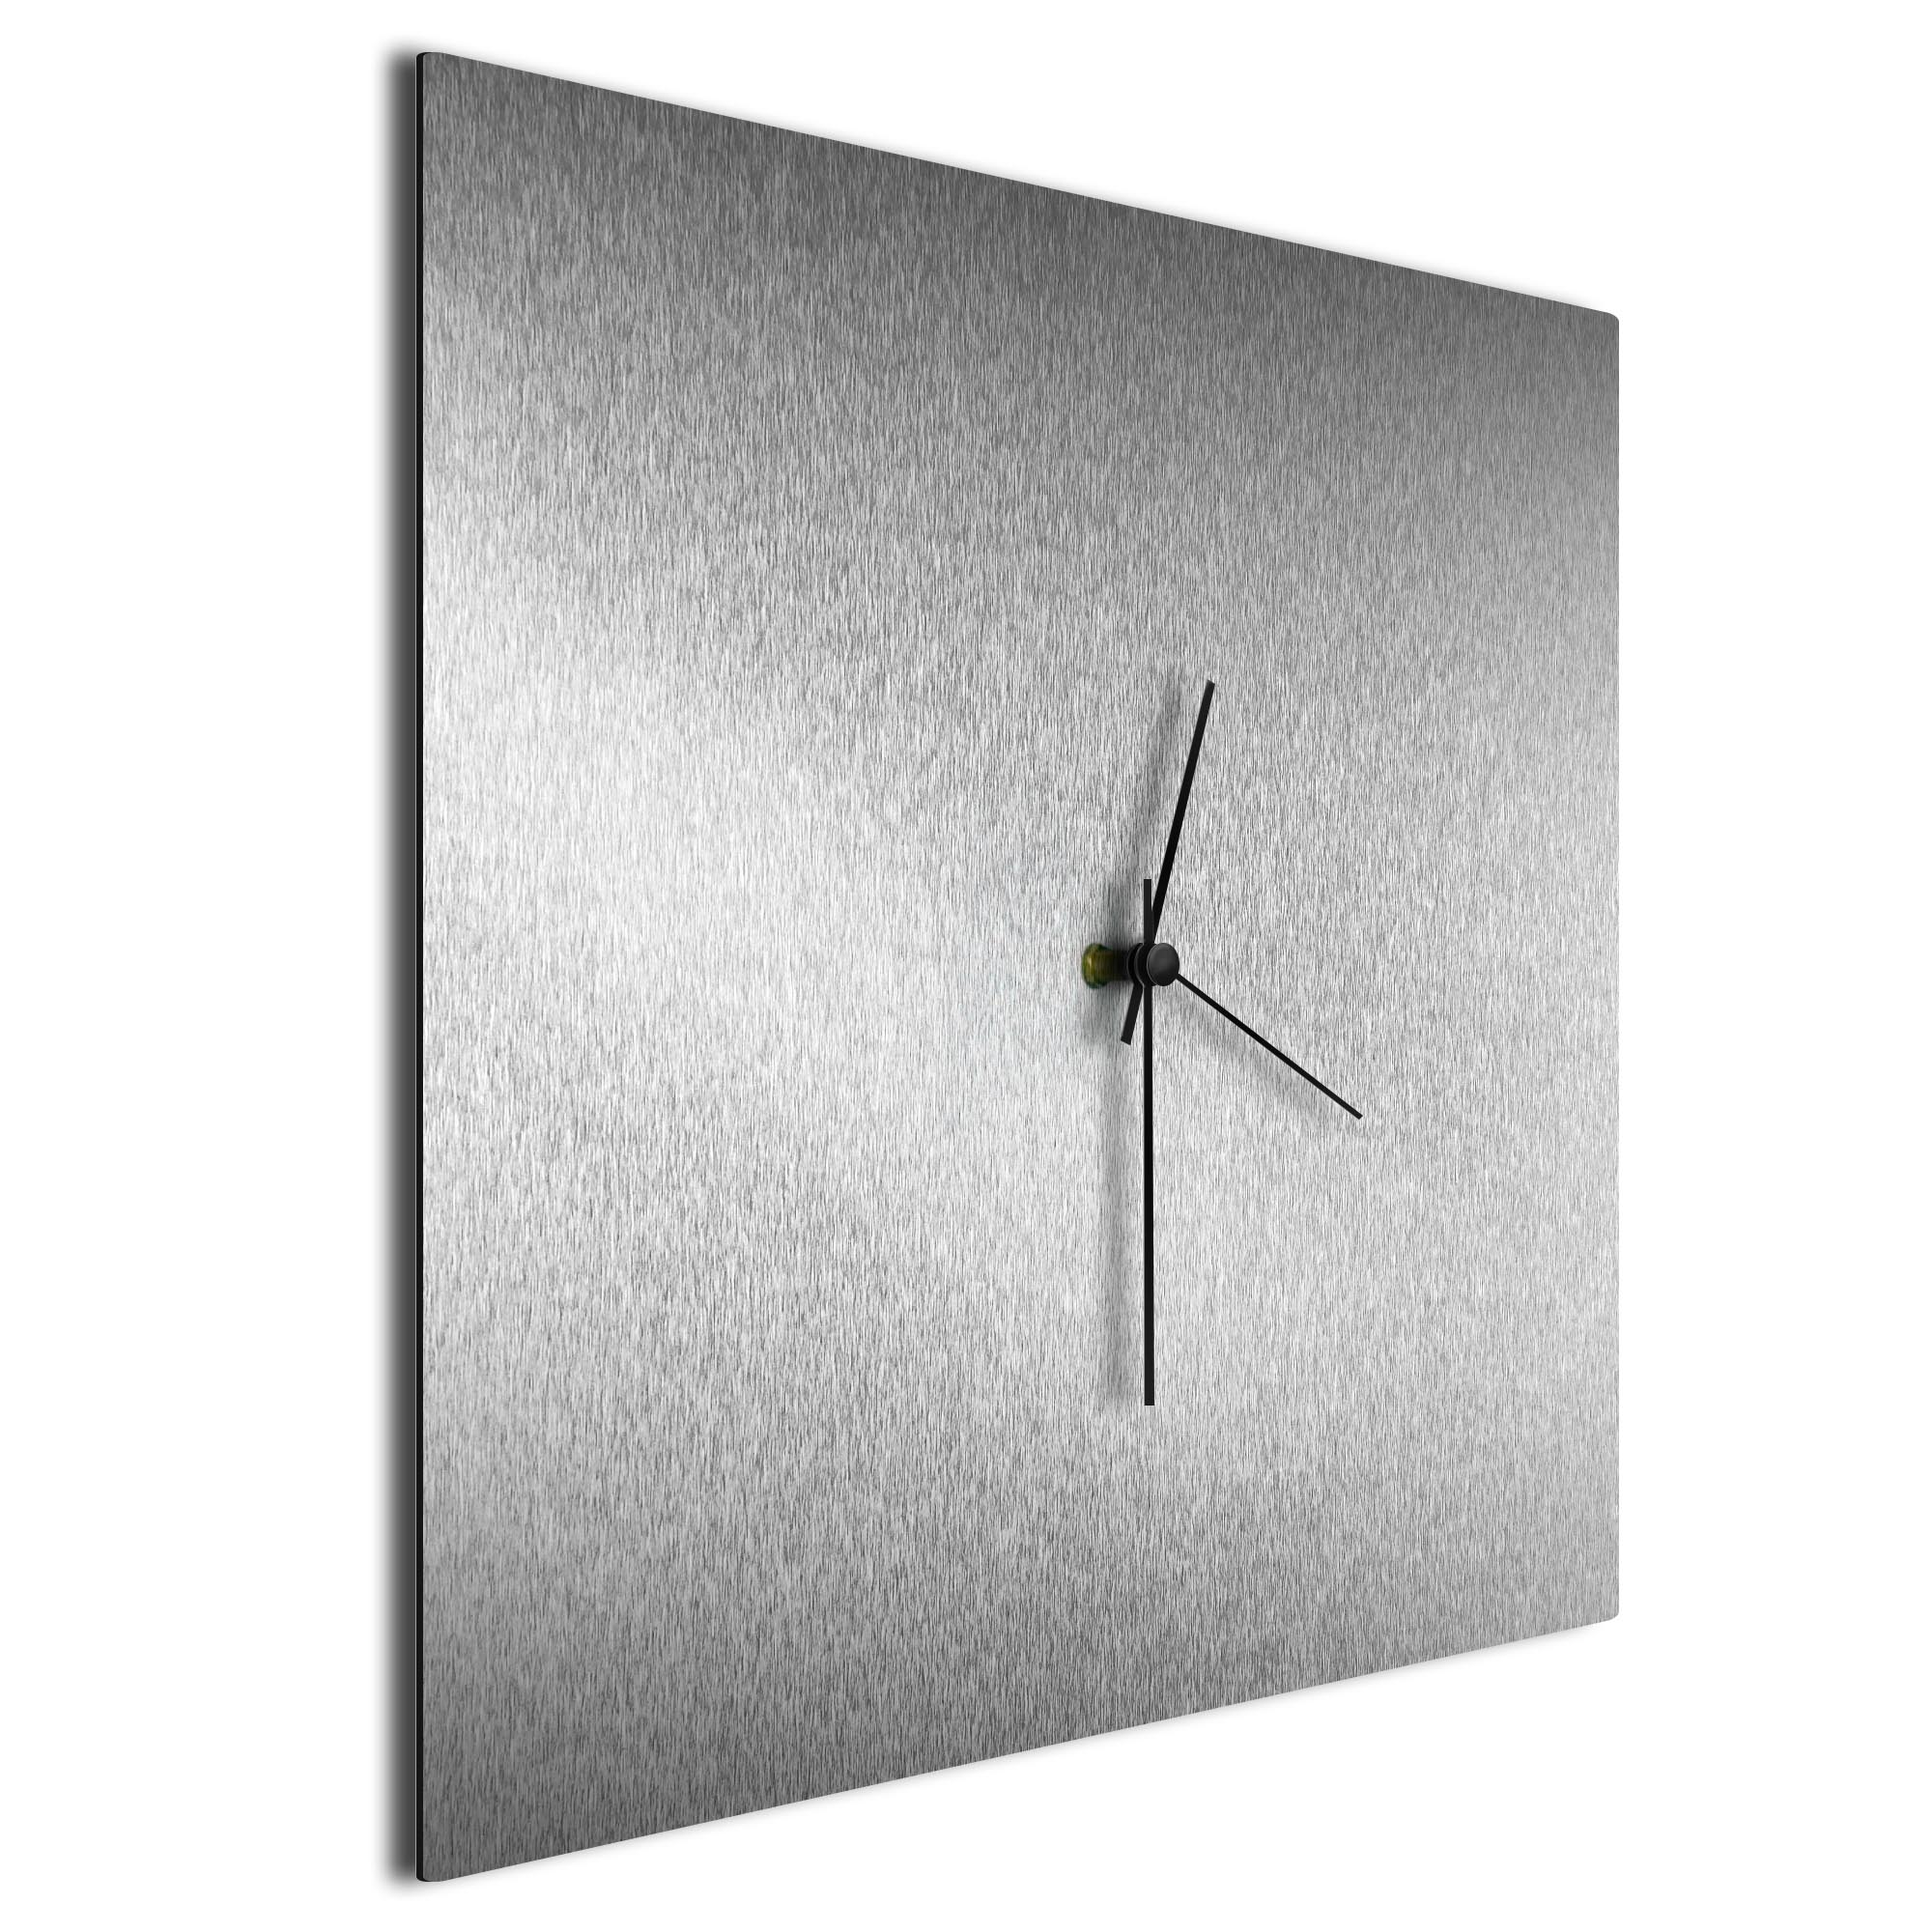 Silversmith Square Clock Large Black - Image 2